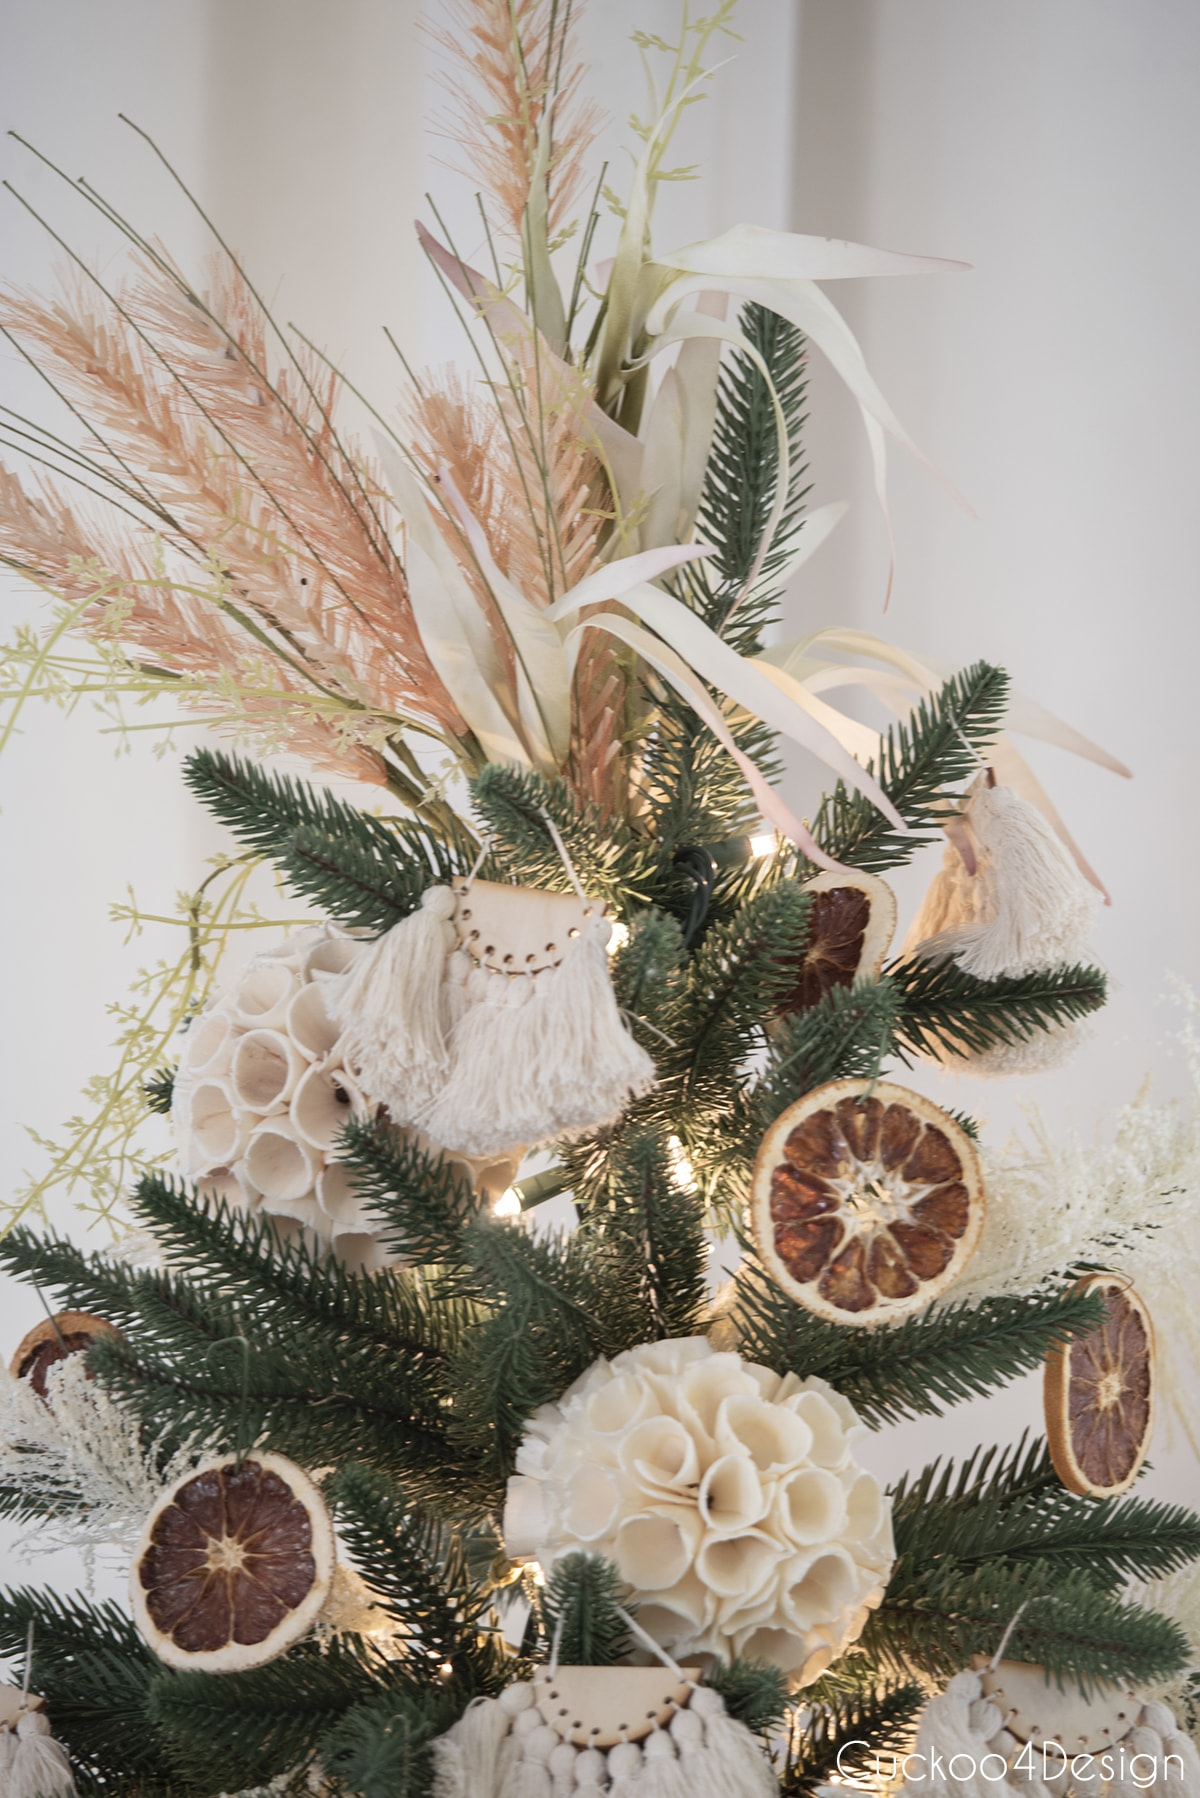 close up of grass tree topper on boho Christmas tree